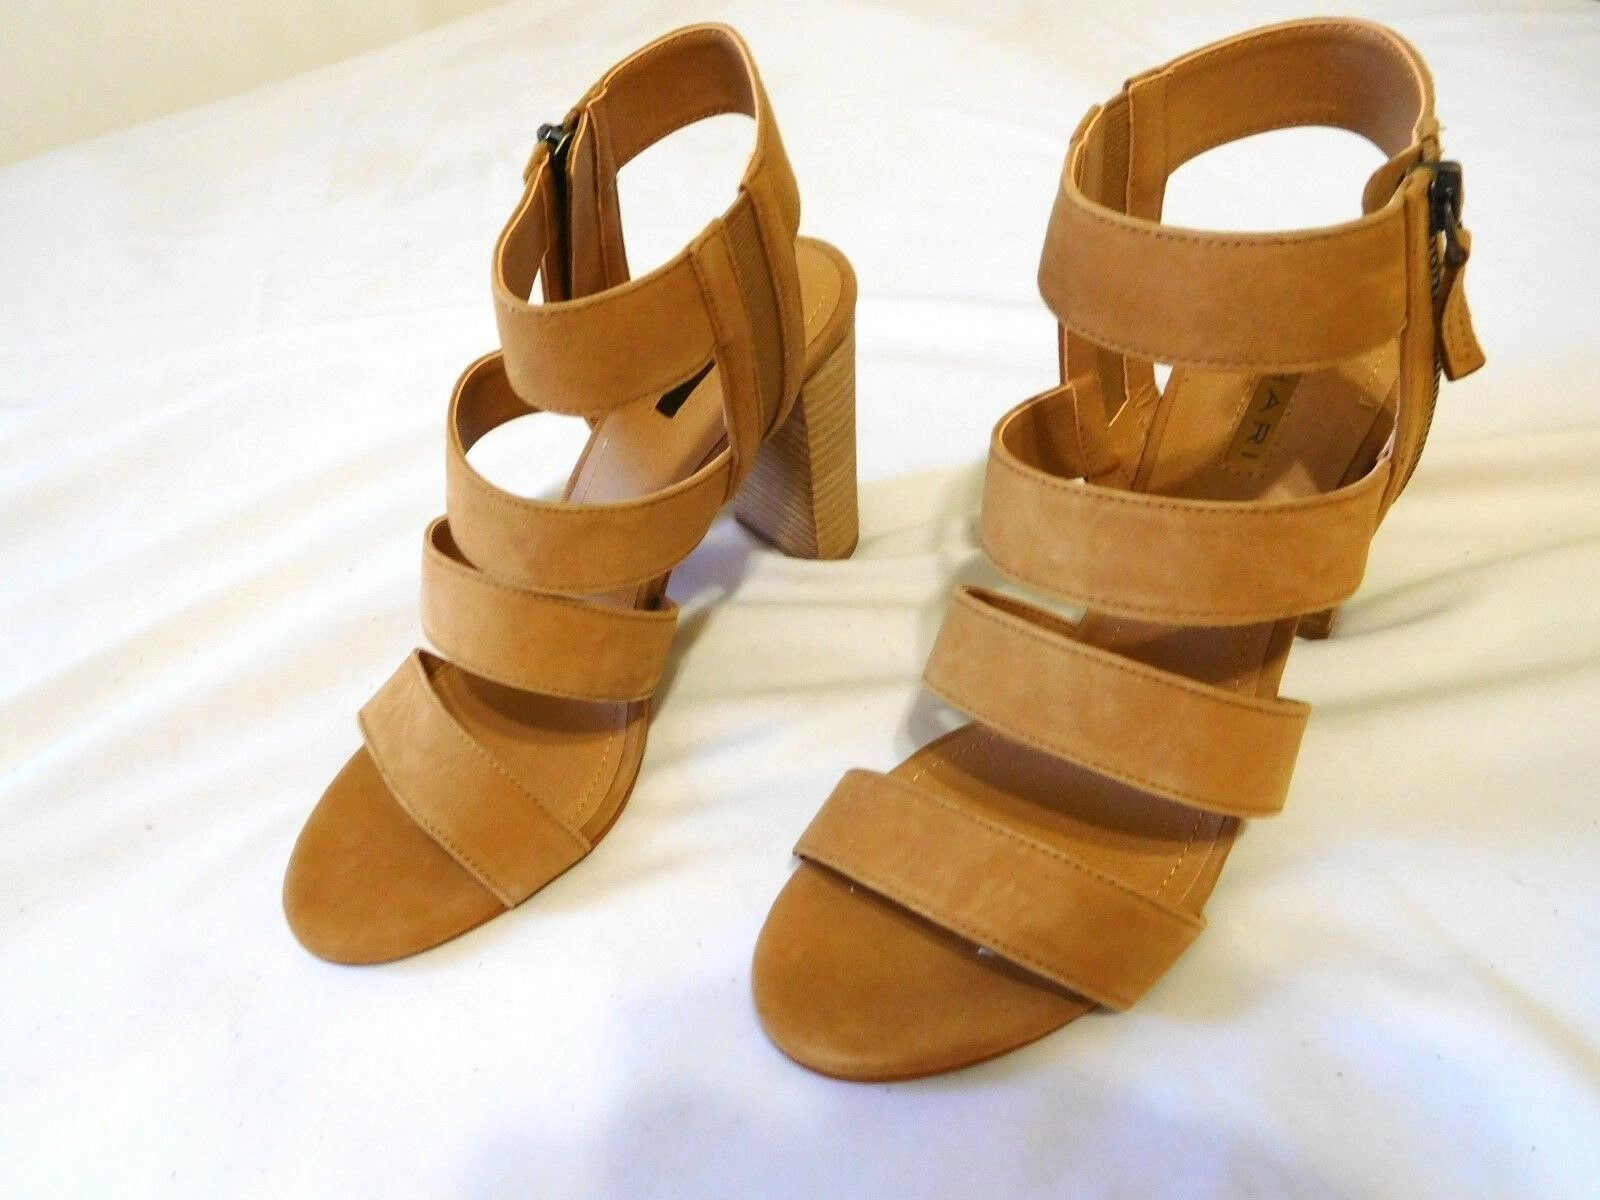 Tahari Strappy Sandal Women shoes Fawn Sz 9.5 New Heel Open Toe Strappy Straps